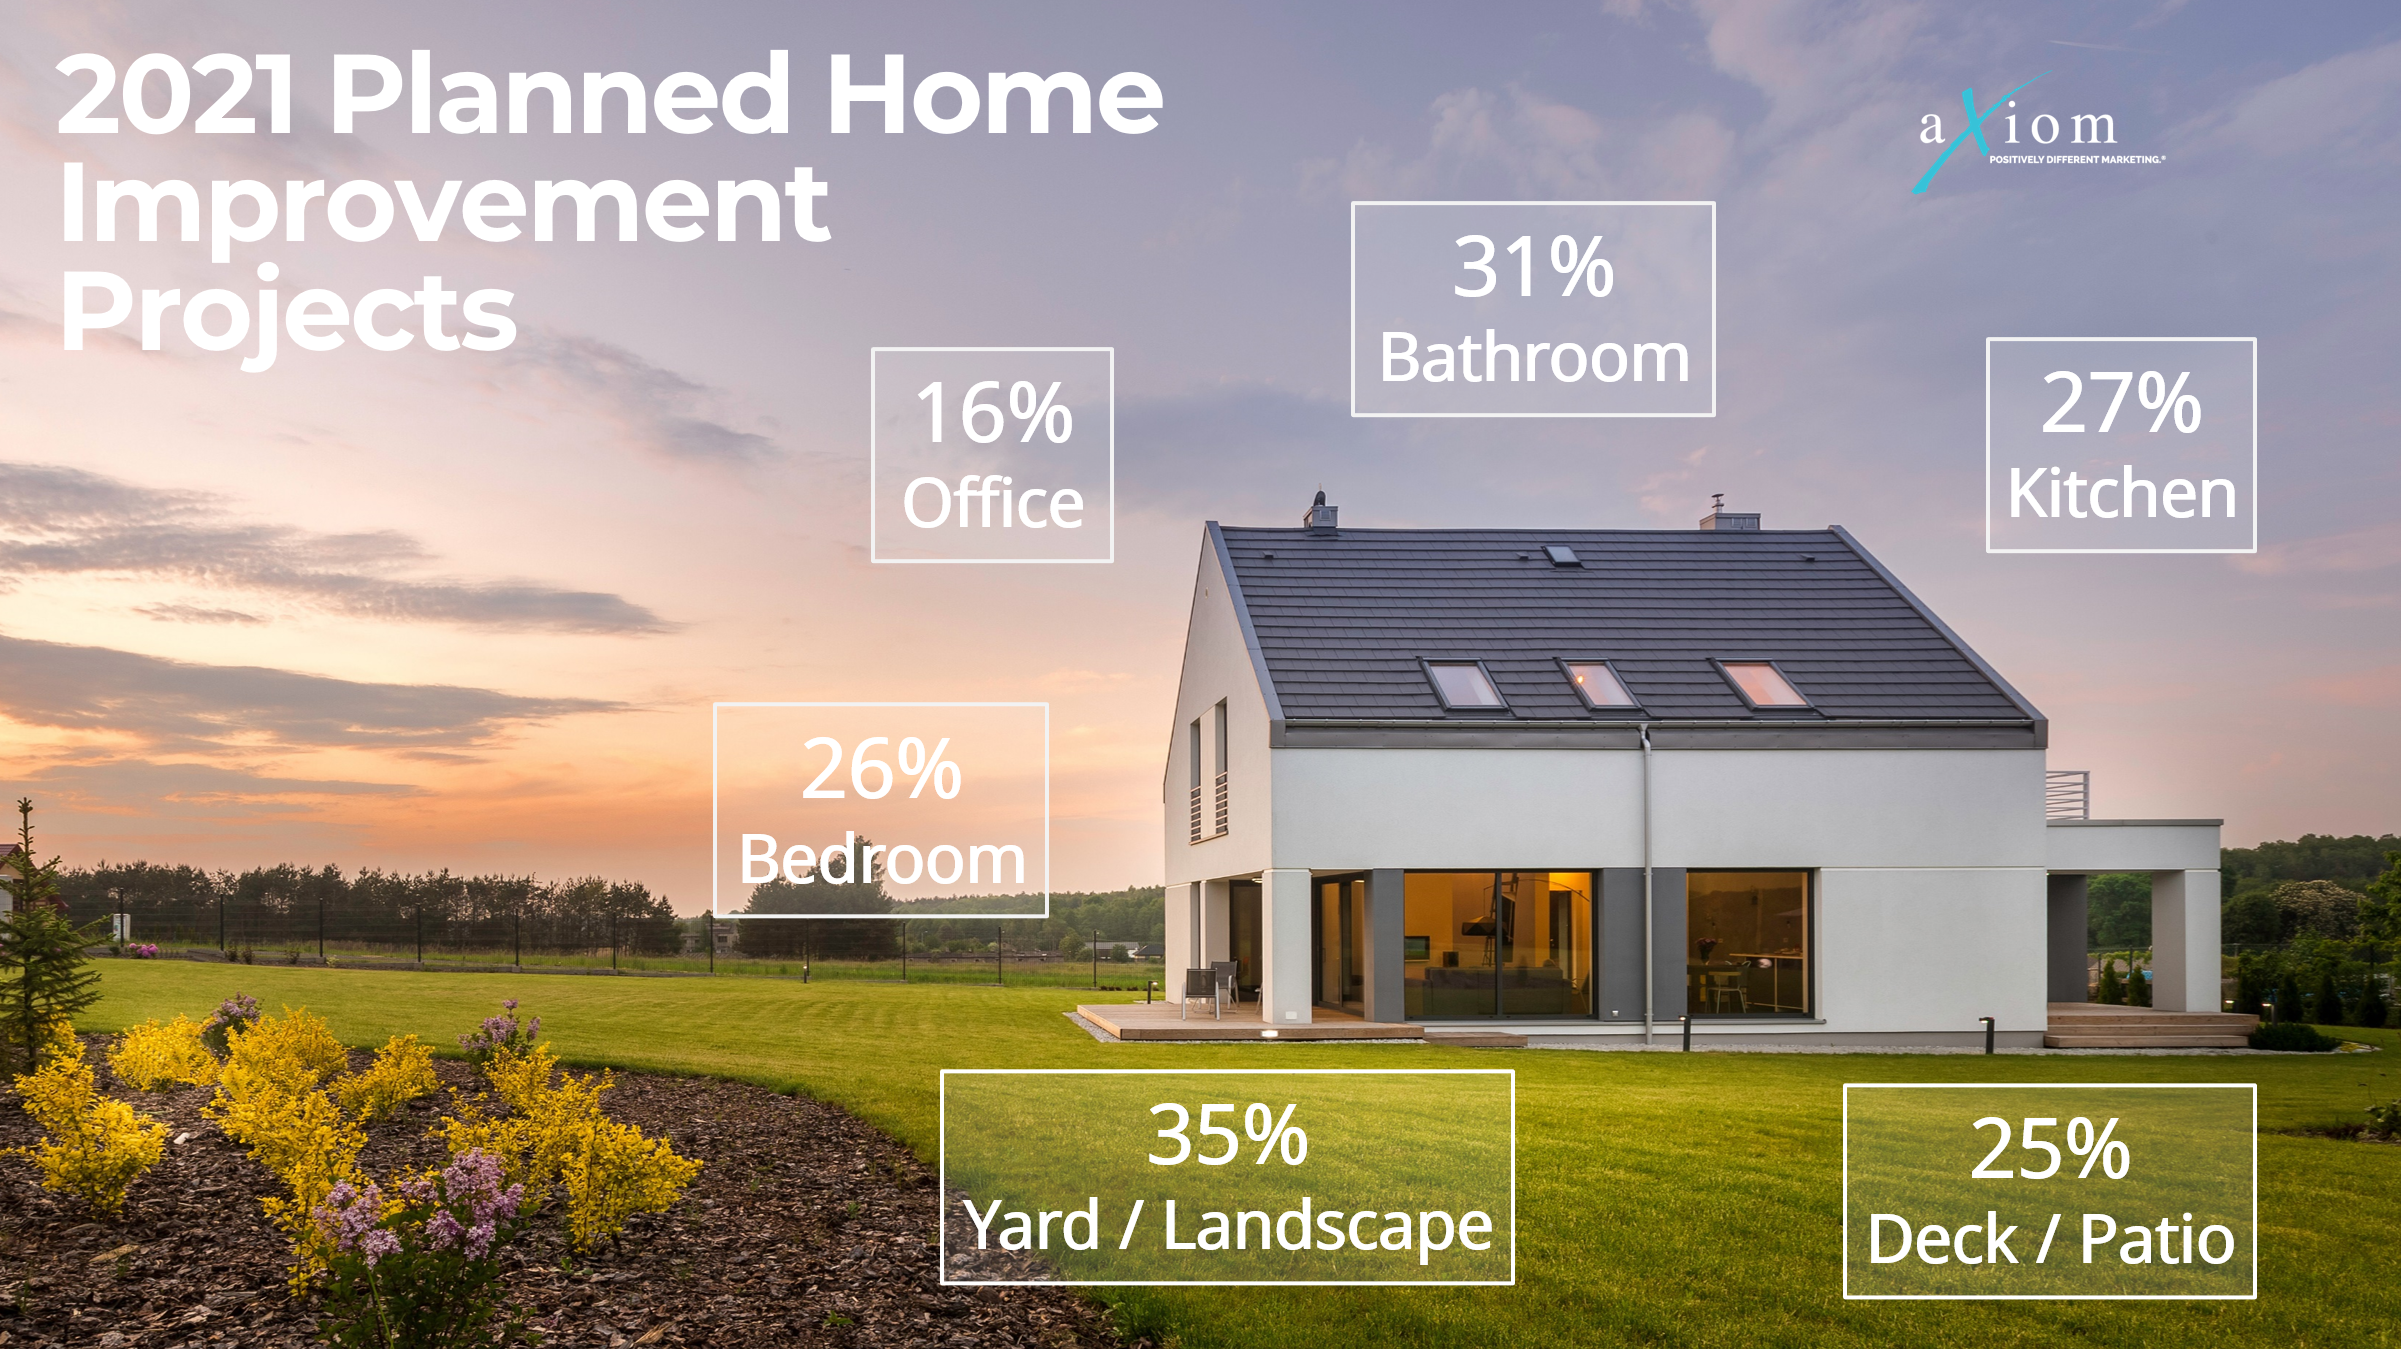 Axiom Marketing looks at forecasting home improvement in 2021.